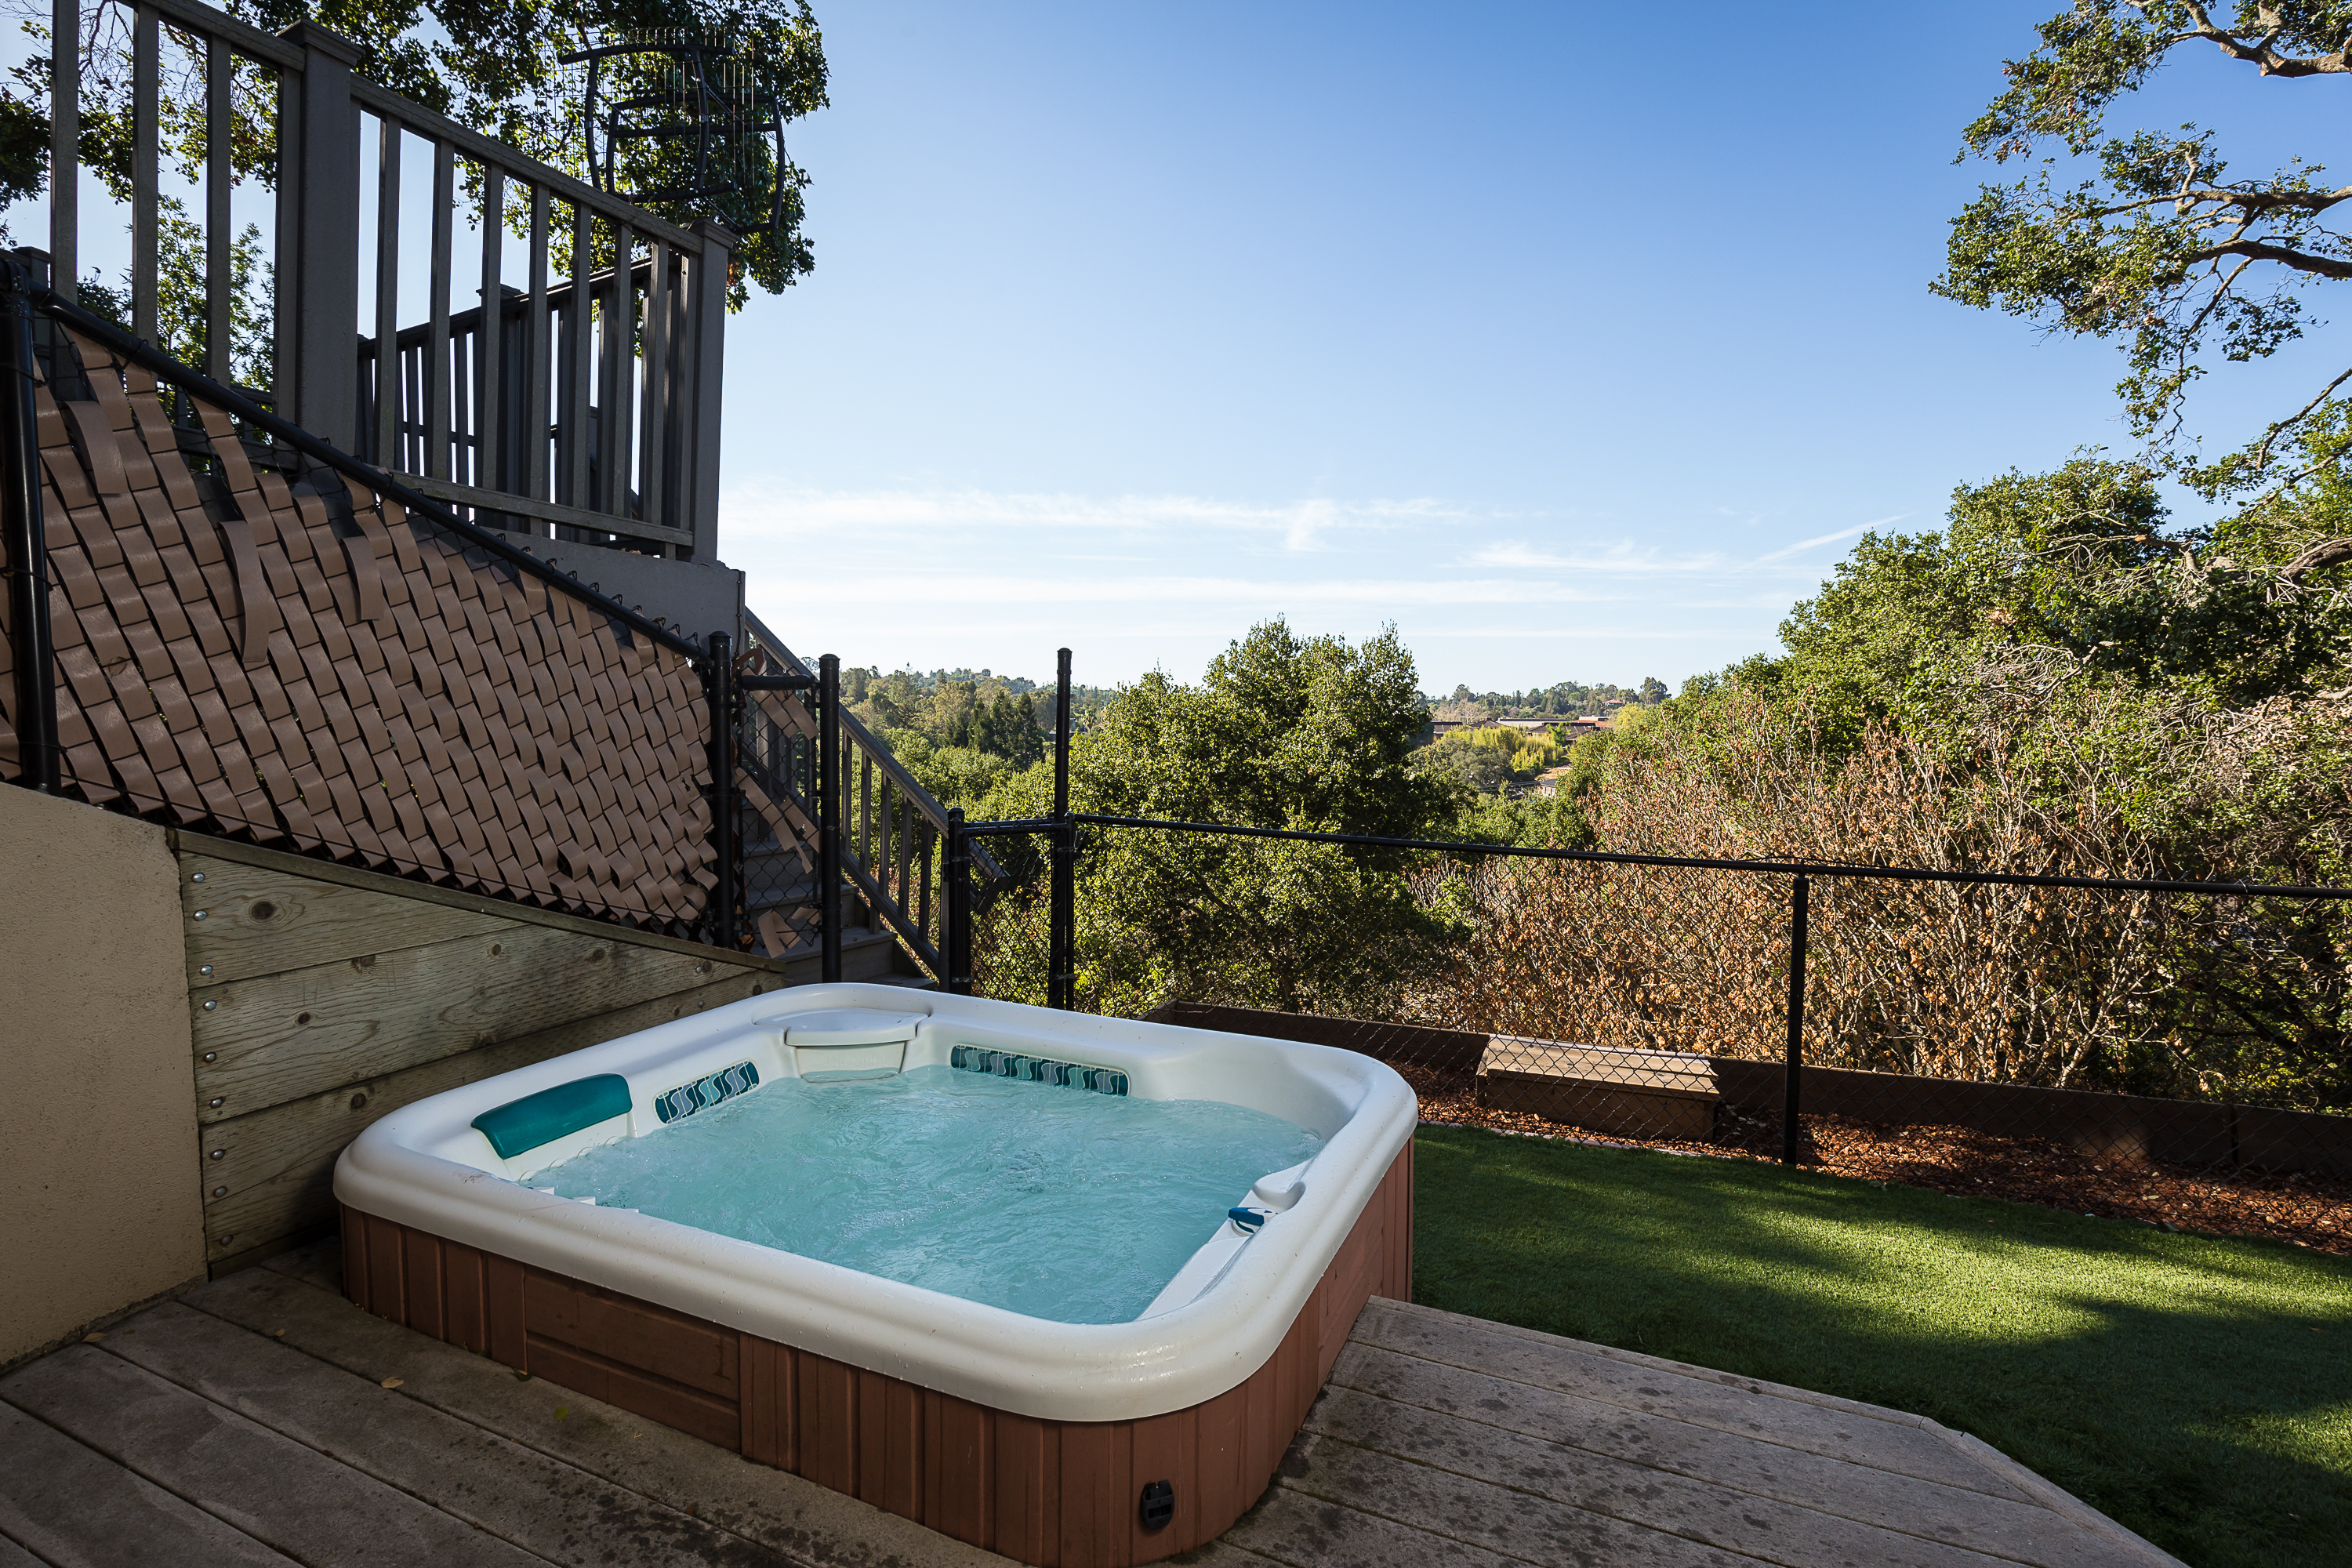 Jacuzzi overlooking expansive view